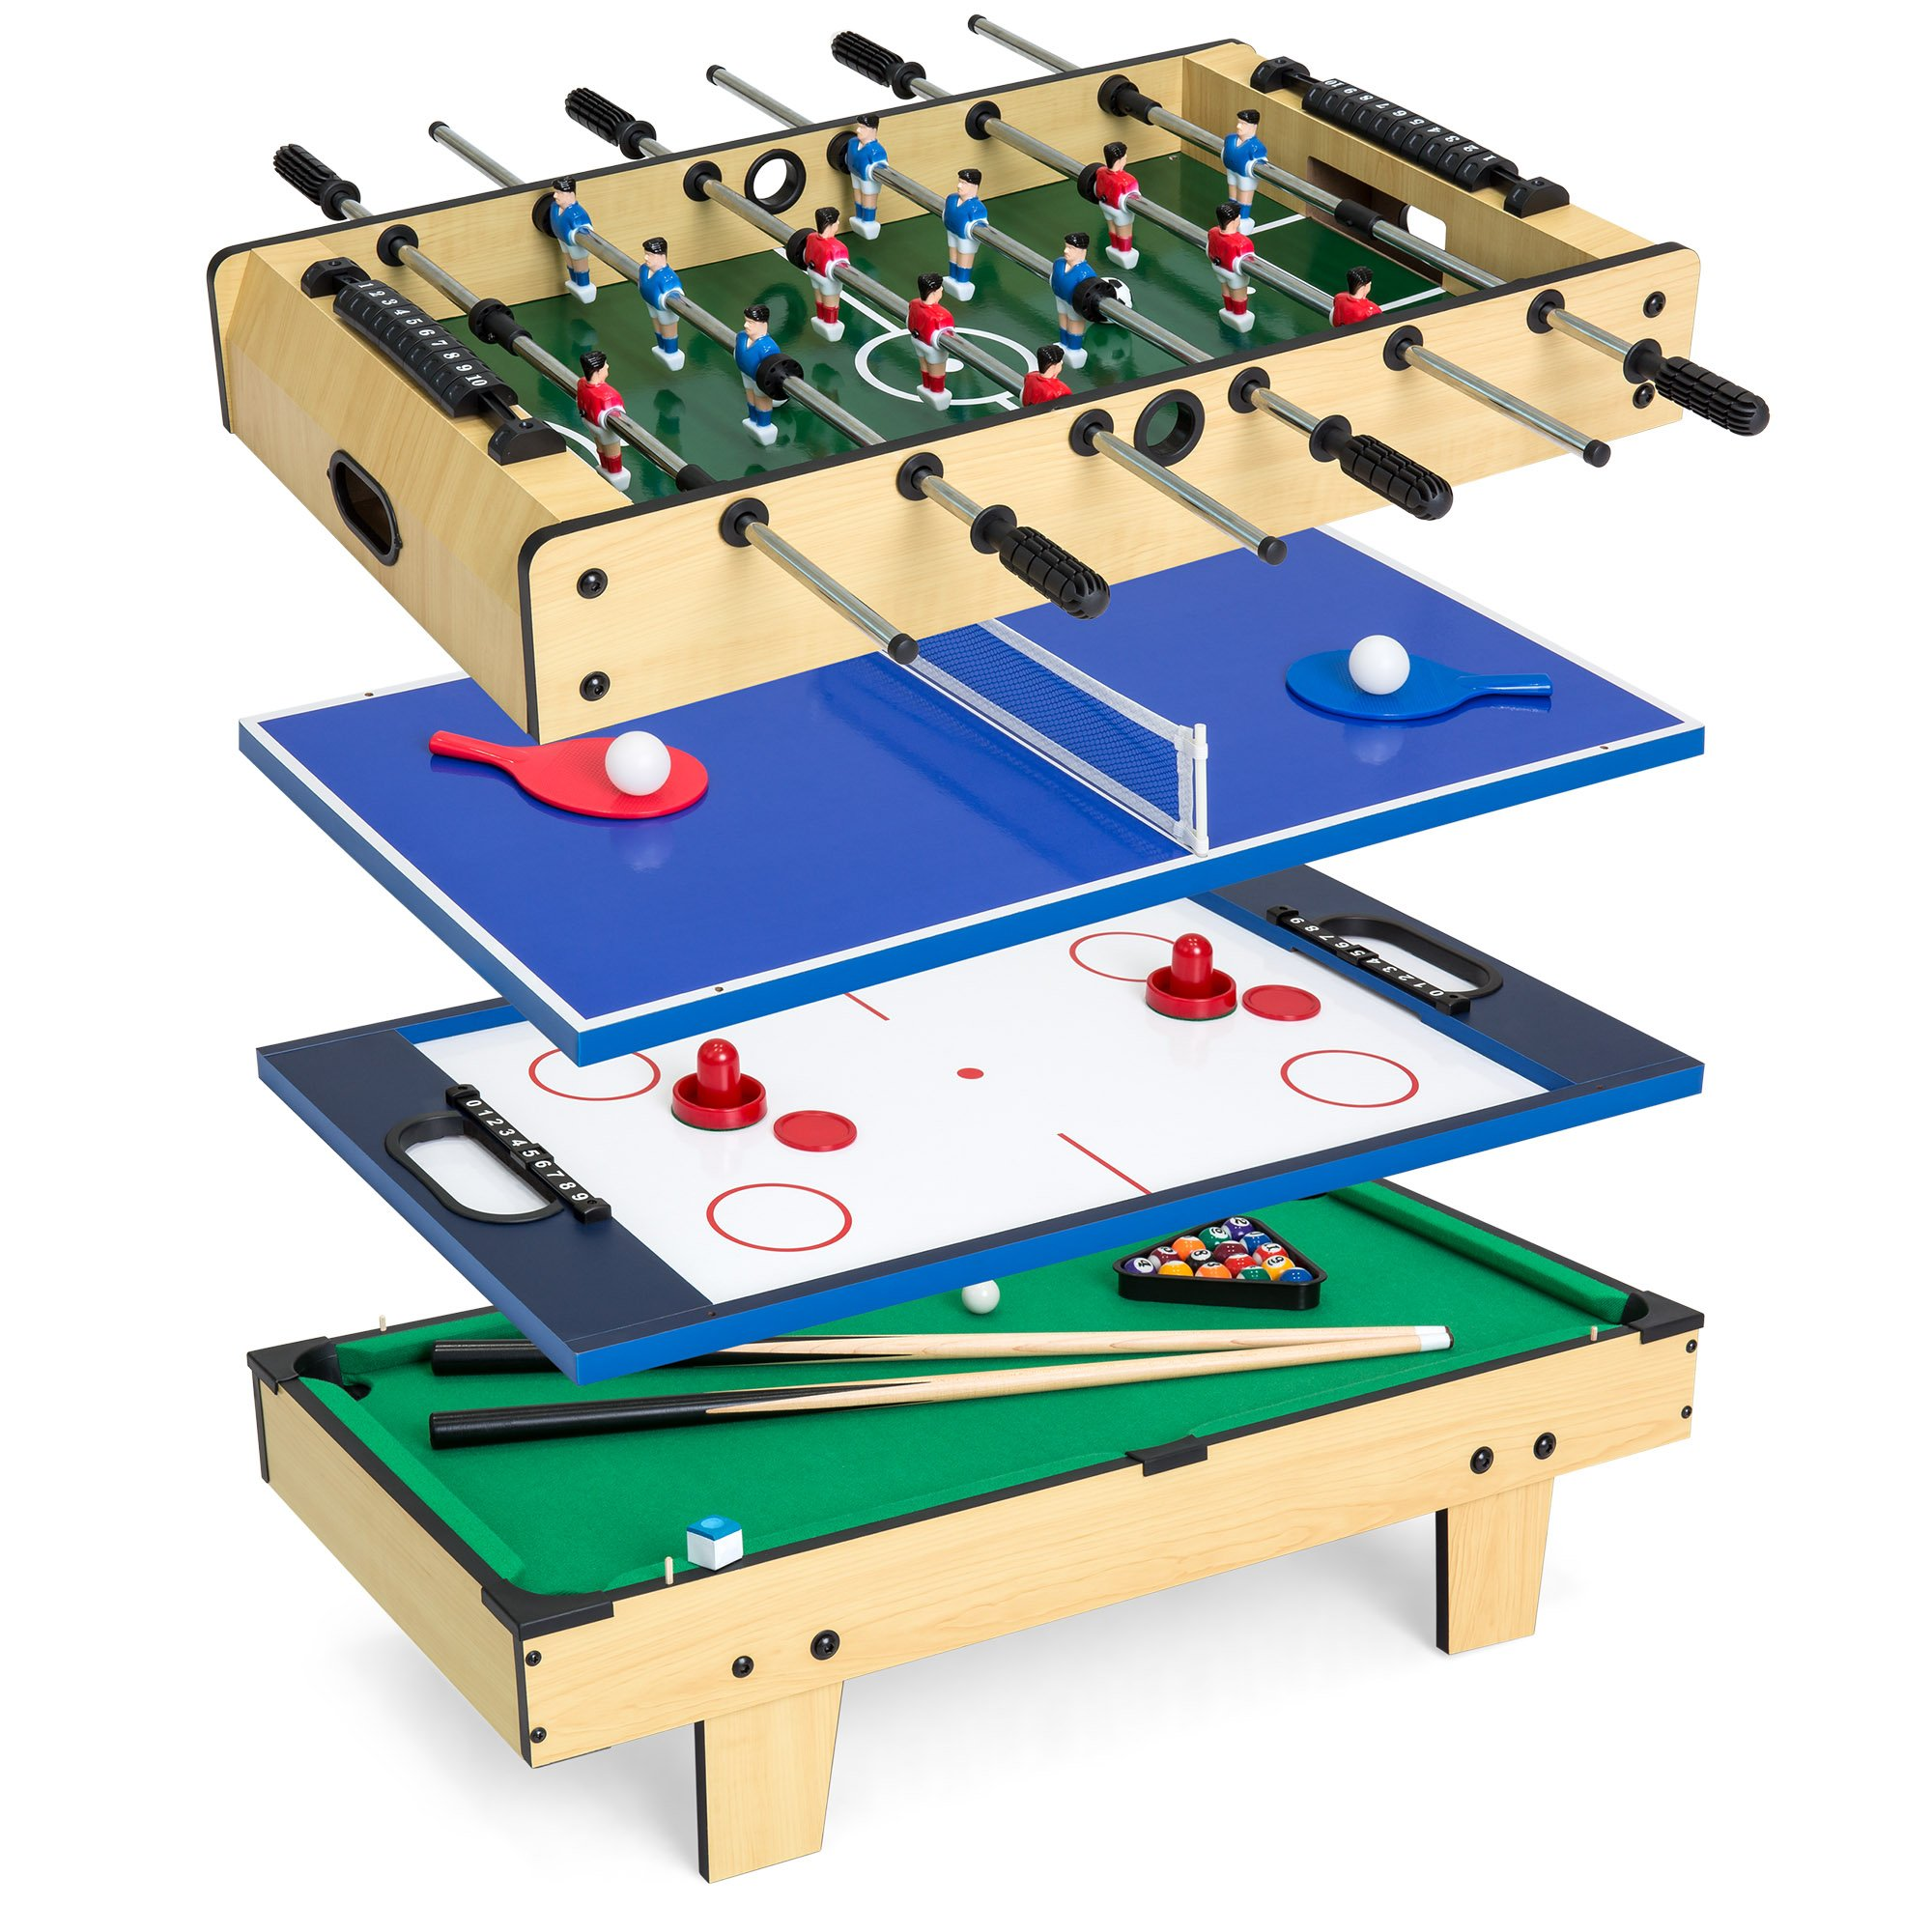 Best Choice Products 4-in-1 Multi Arcade Competition Game Table Set w/Pool Billiards, Air Hockey, Foosball, Table Tennis by Best Choice Products